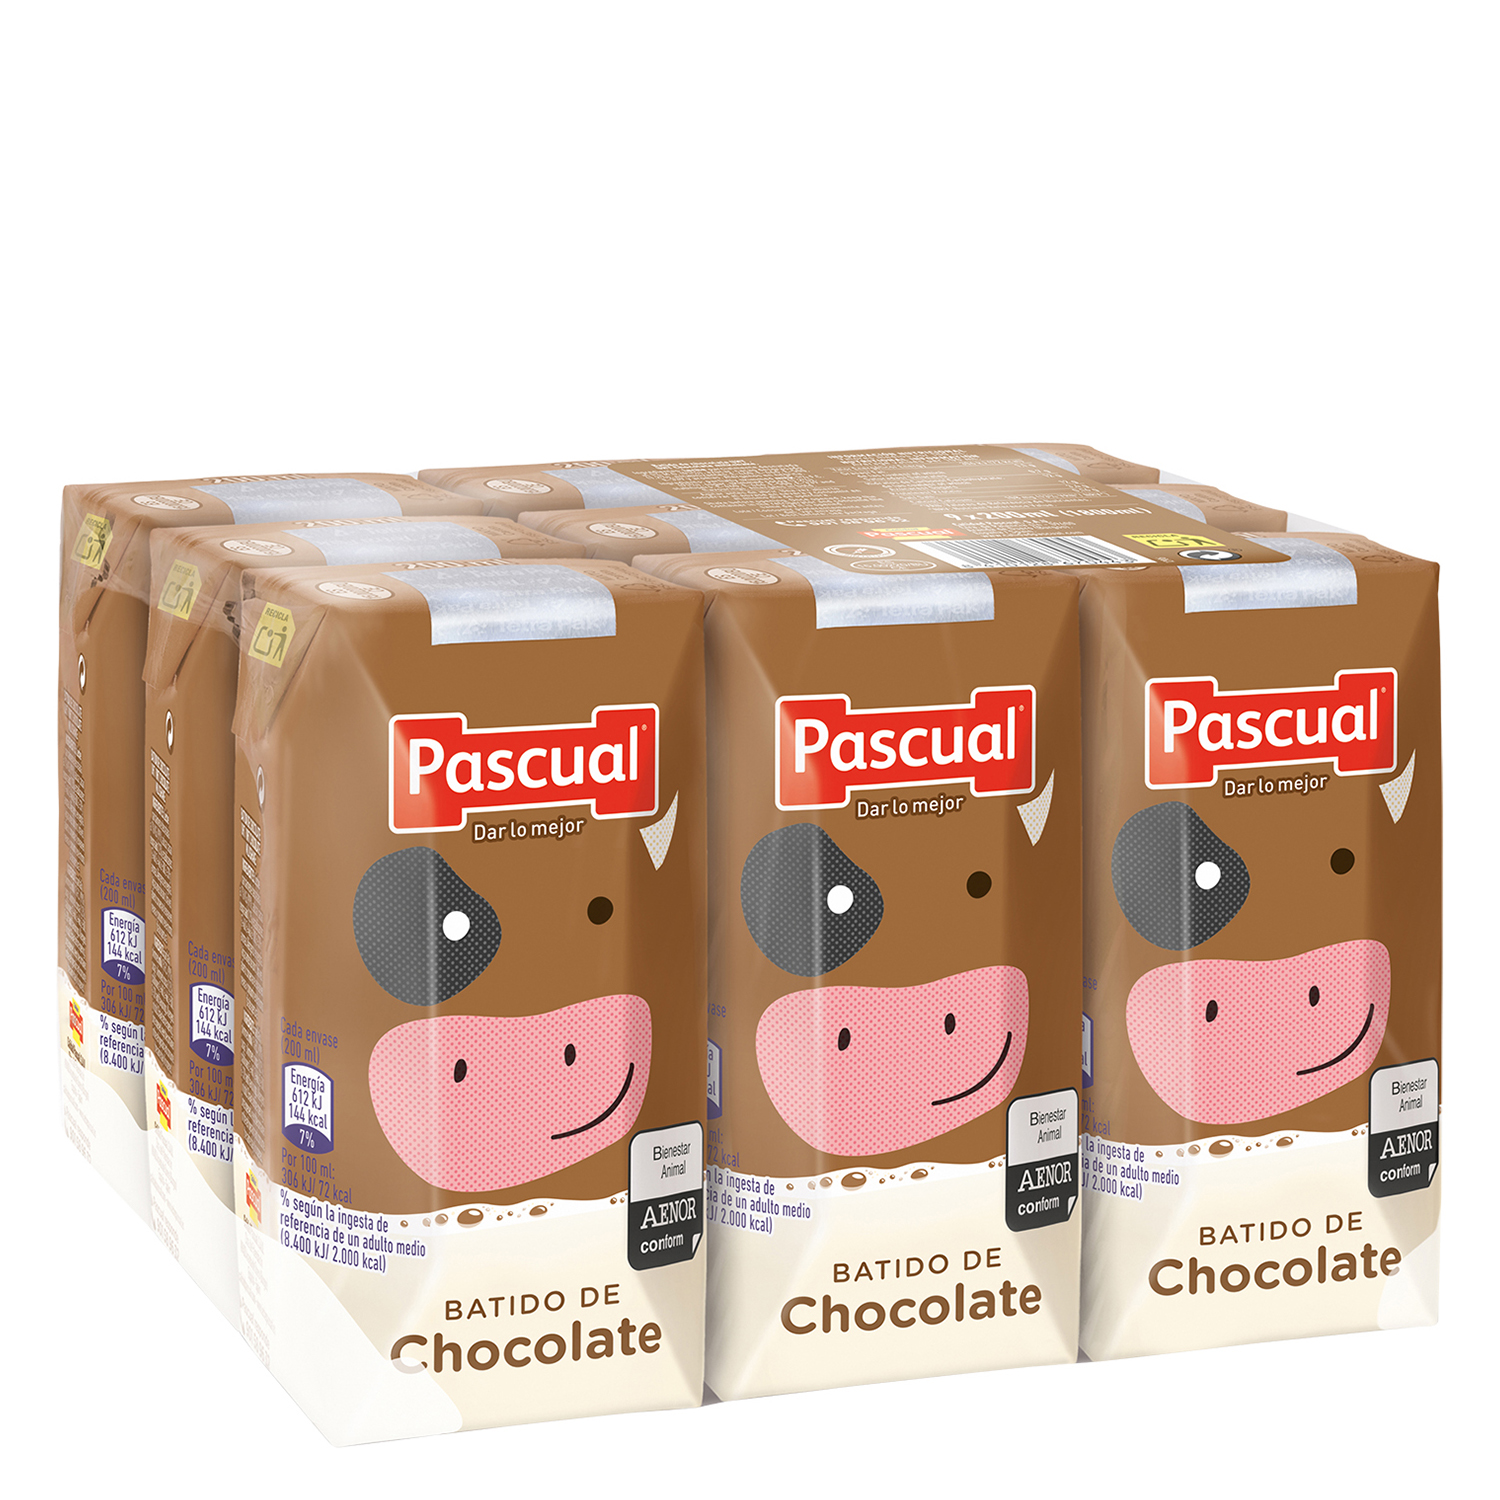 Batido de chocolate Pascual pack de 9 briks de 200 ml.